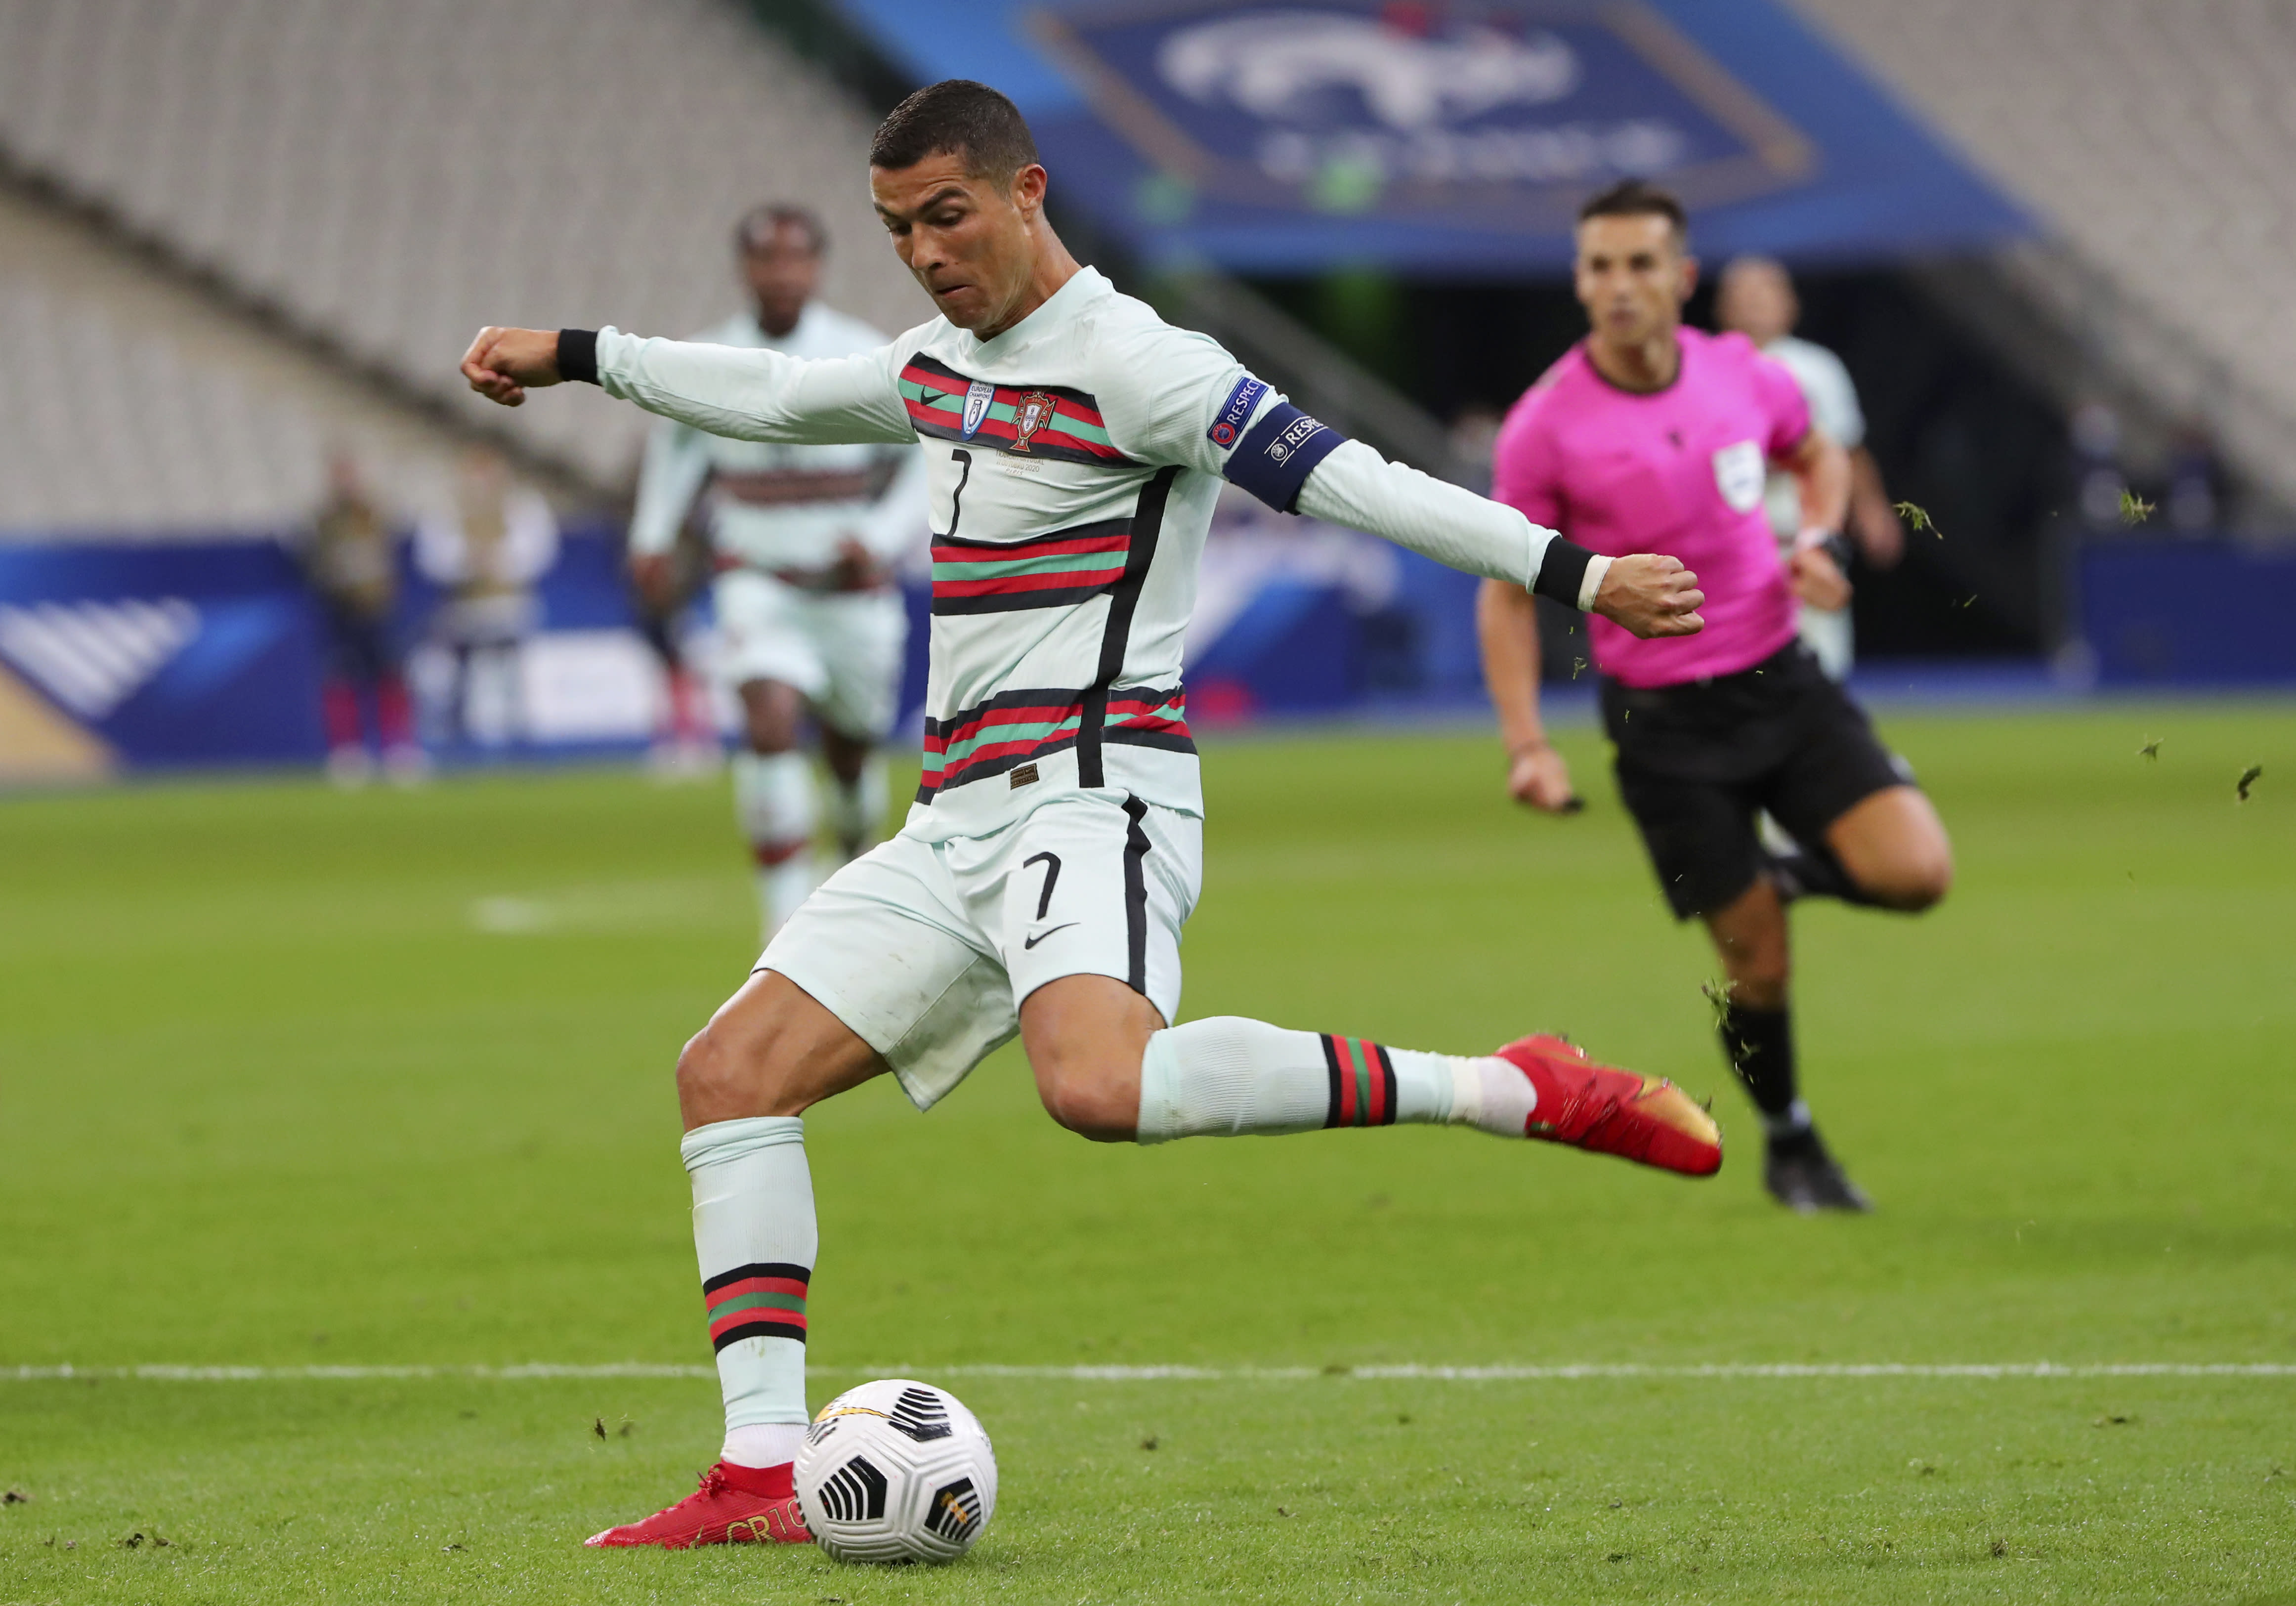 FILE - In this Sunday, Oct. 11, 2020 file photo Portugal's Cristiano Ronaldo attempts a shot at goal during the UEFA Nations League soccer match between France and Portugal at the Stade de France in Saint-Denis, north of Paris, France. The Portuguese soccer federation says Cristiano Ronaldo has tested positive for the coronavirus. The federation says Ronaldo is doing well and has no symptoms. He has been dropped from the country's Nations League match against Sweden on Wednesday. (AP Photo/Thibault Camus, File)